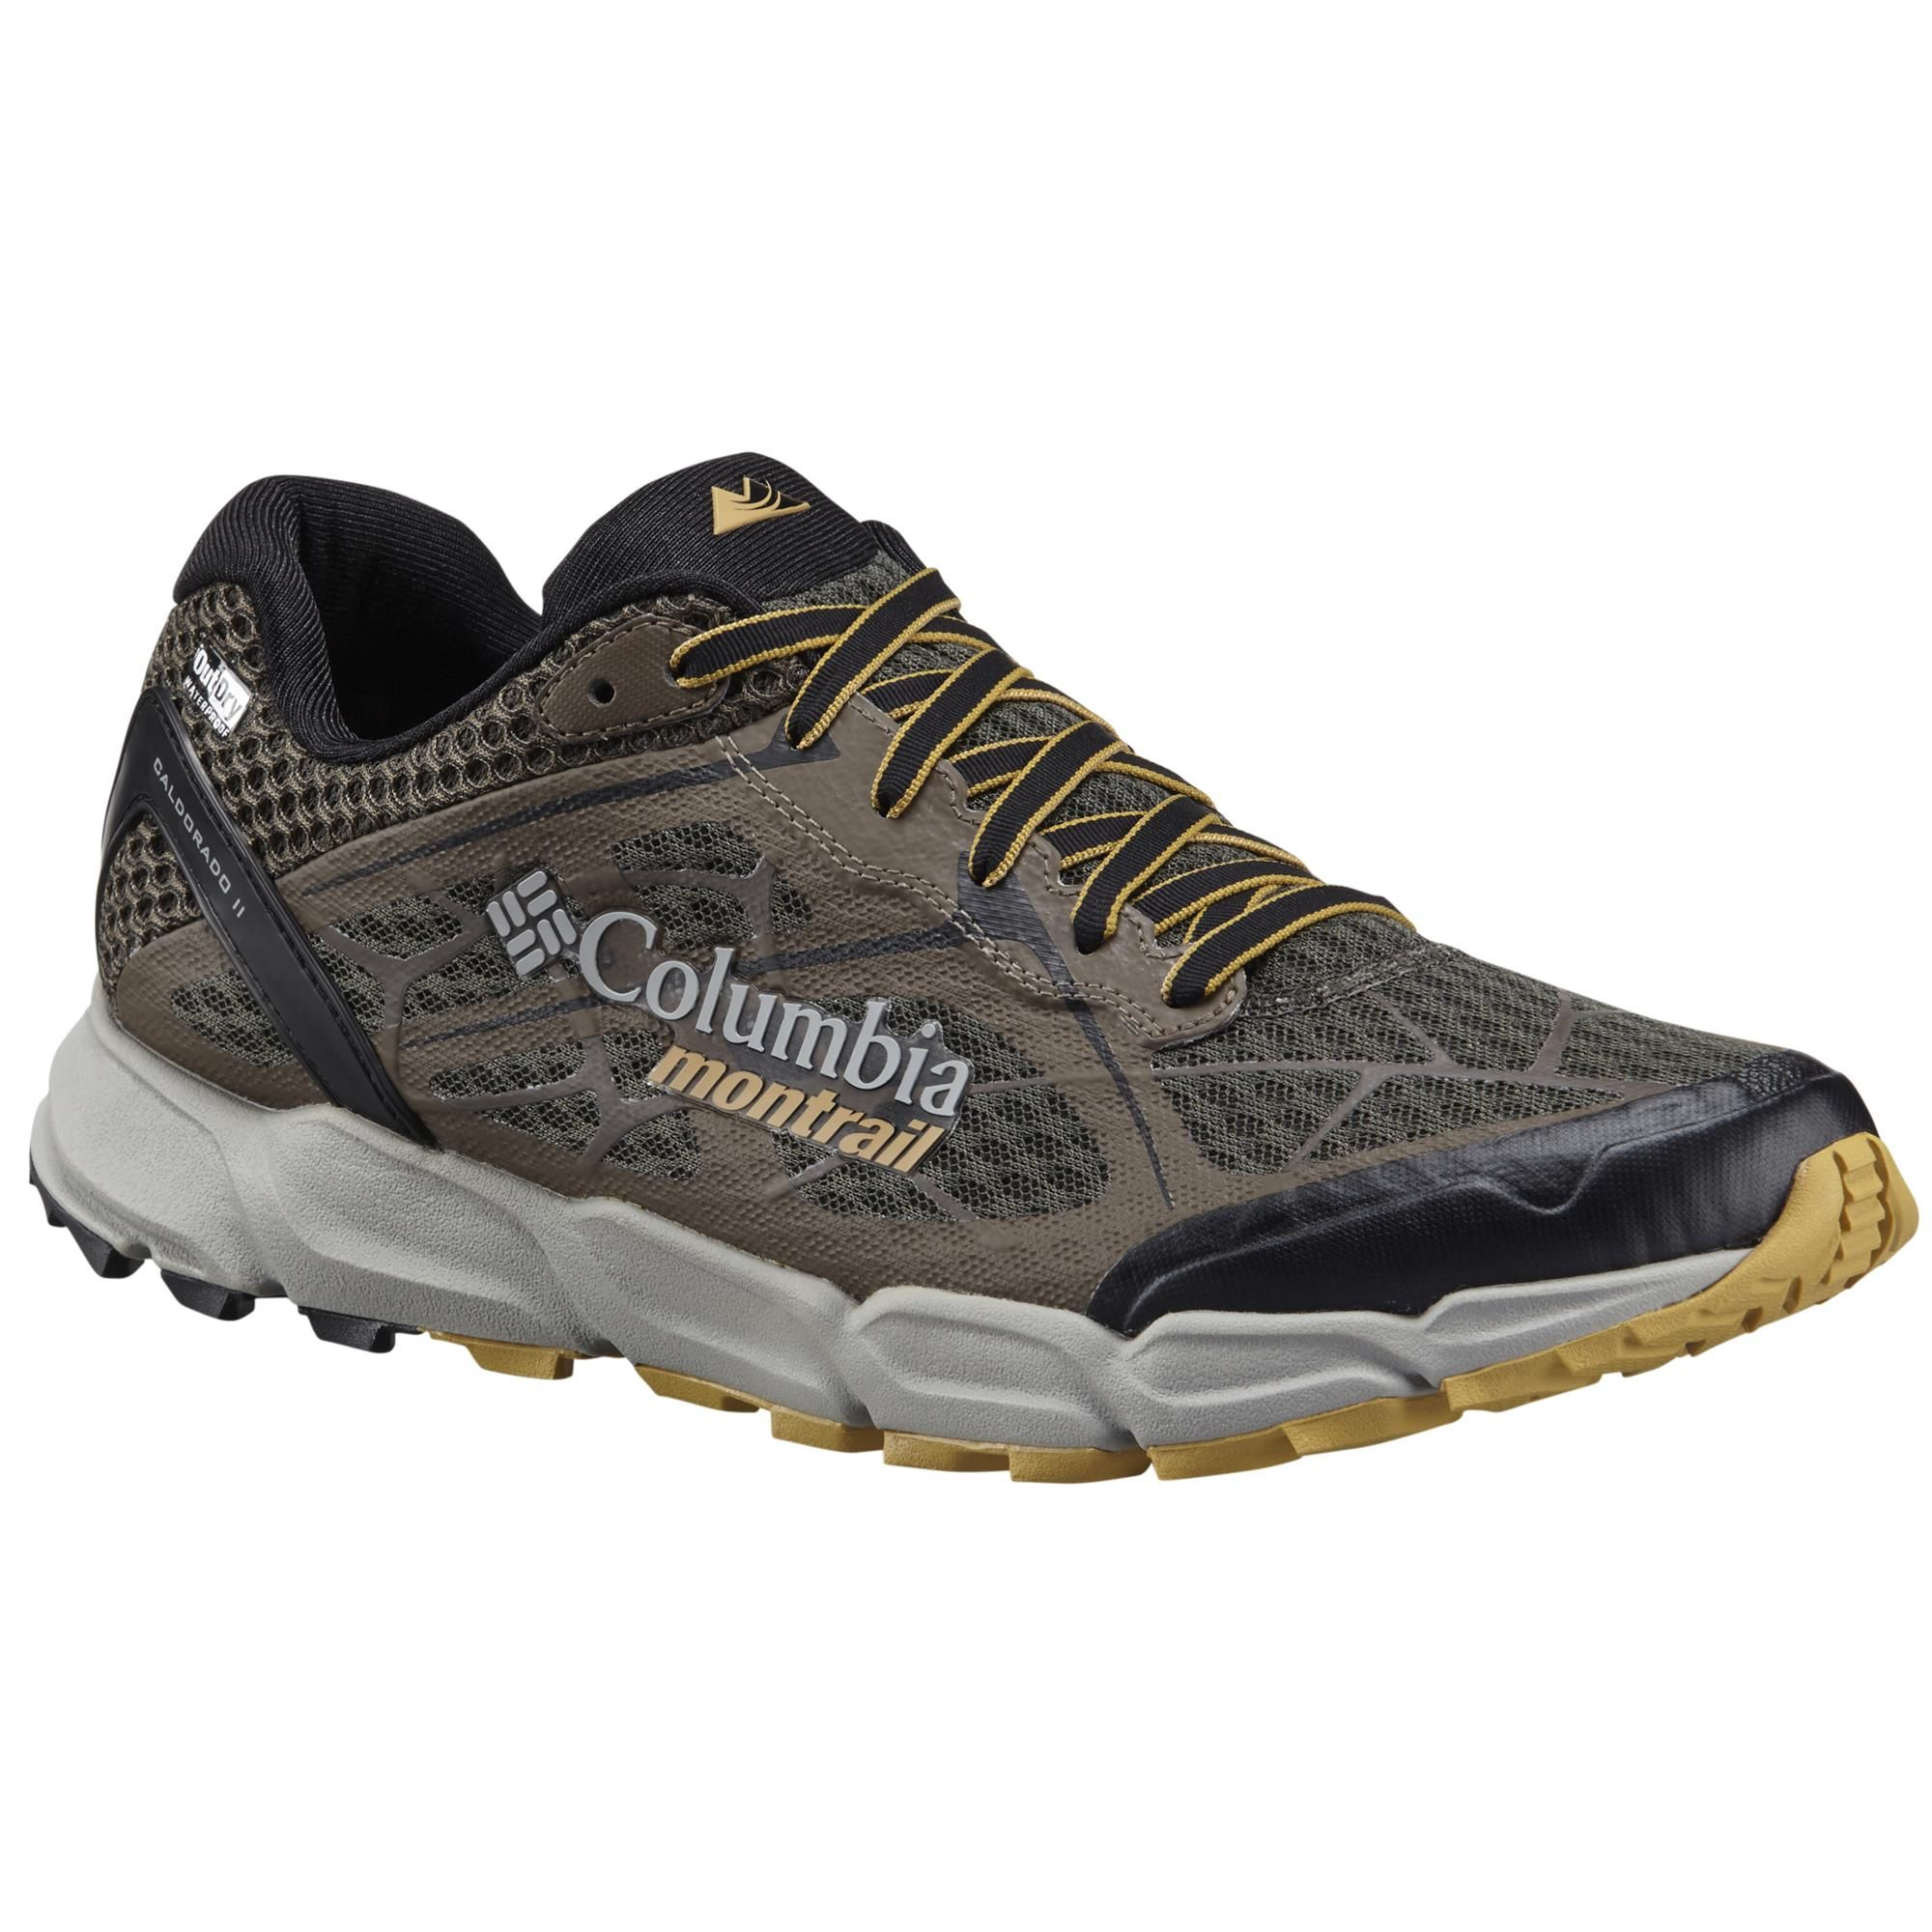 Doorout Angebote Columbia Caldorado II Outdry men Wanderschuh braun Herren Gr. 42,5 EU: Category: Schuhe & Socken > Herren…%#Quickberater%